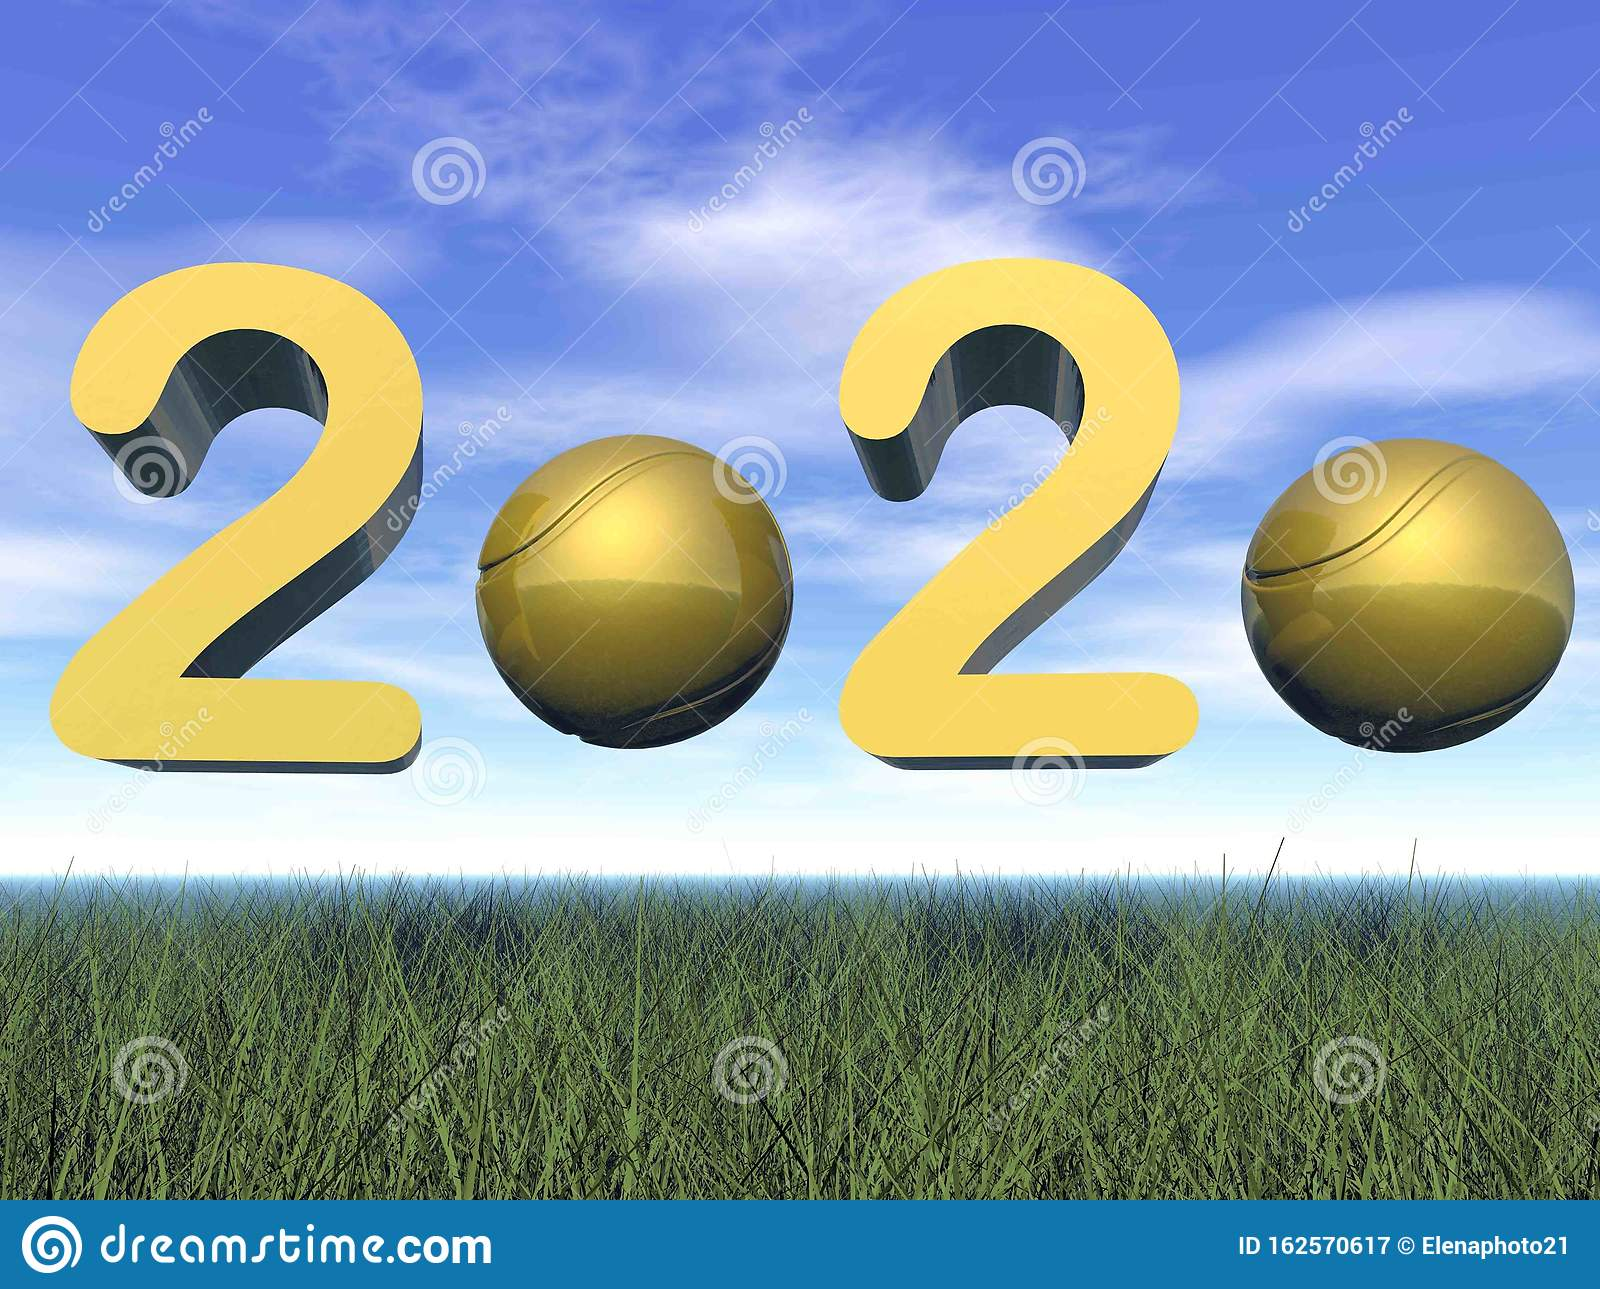 Golden Happy New Year 2020 by day - 3D render